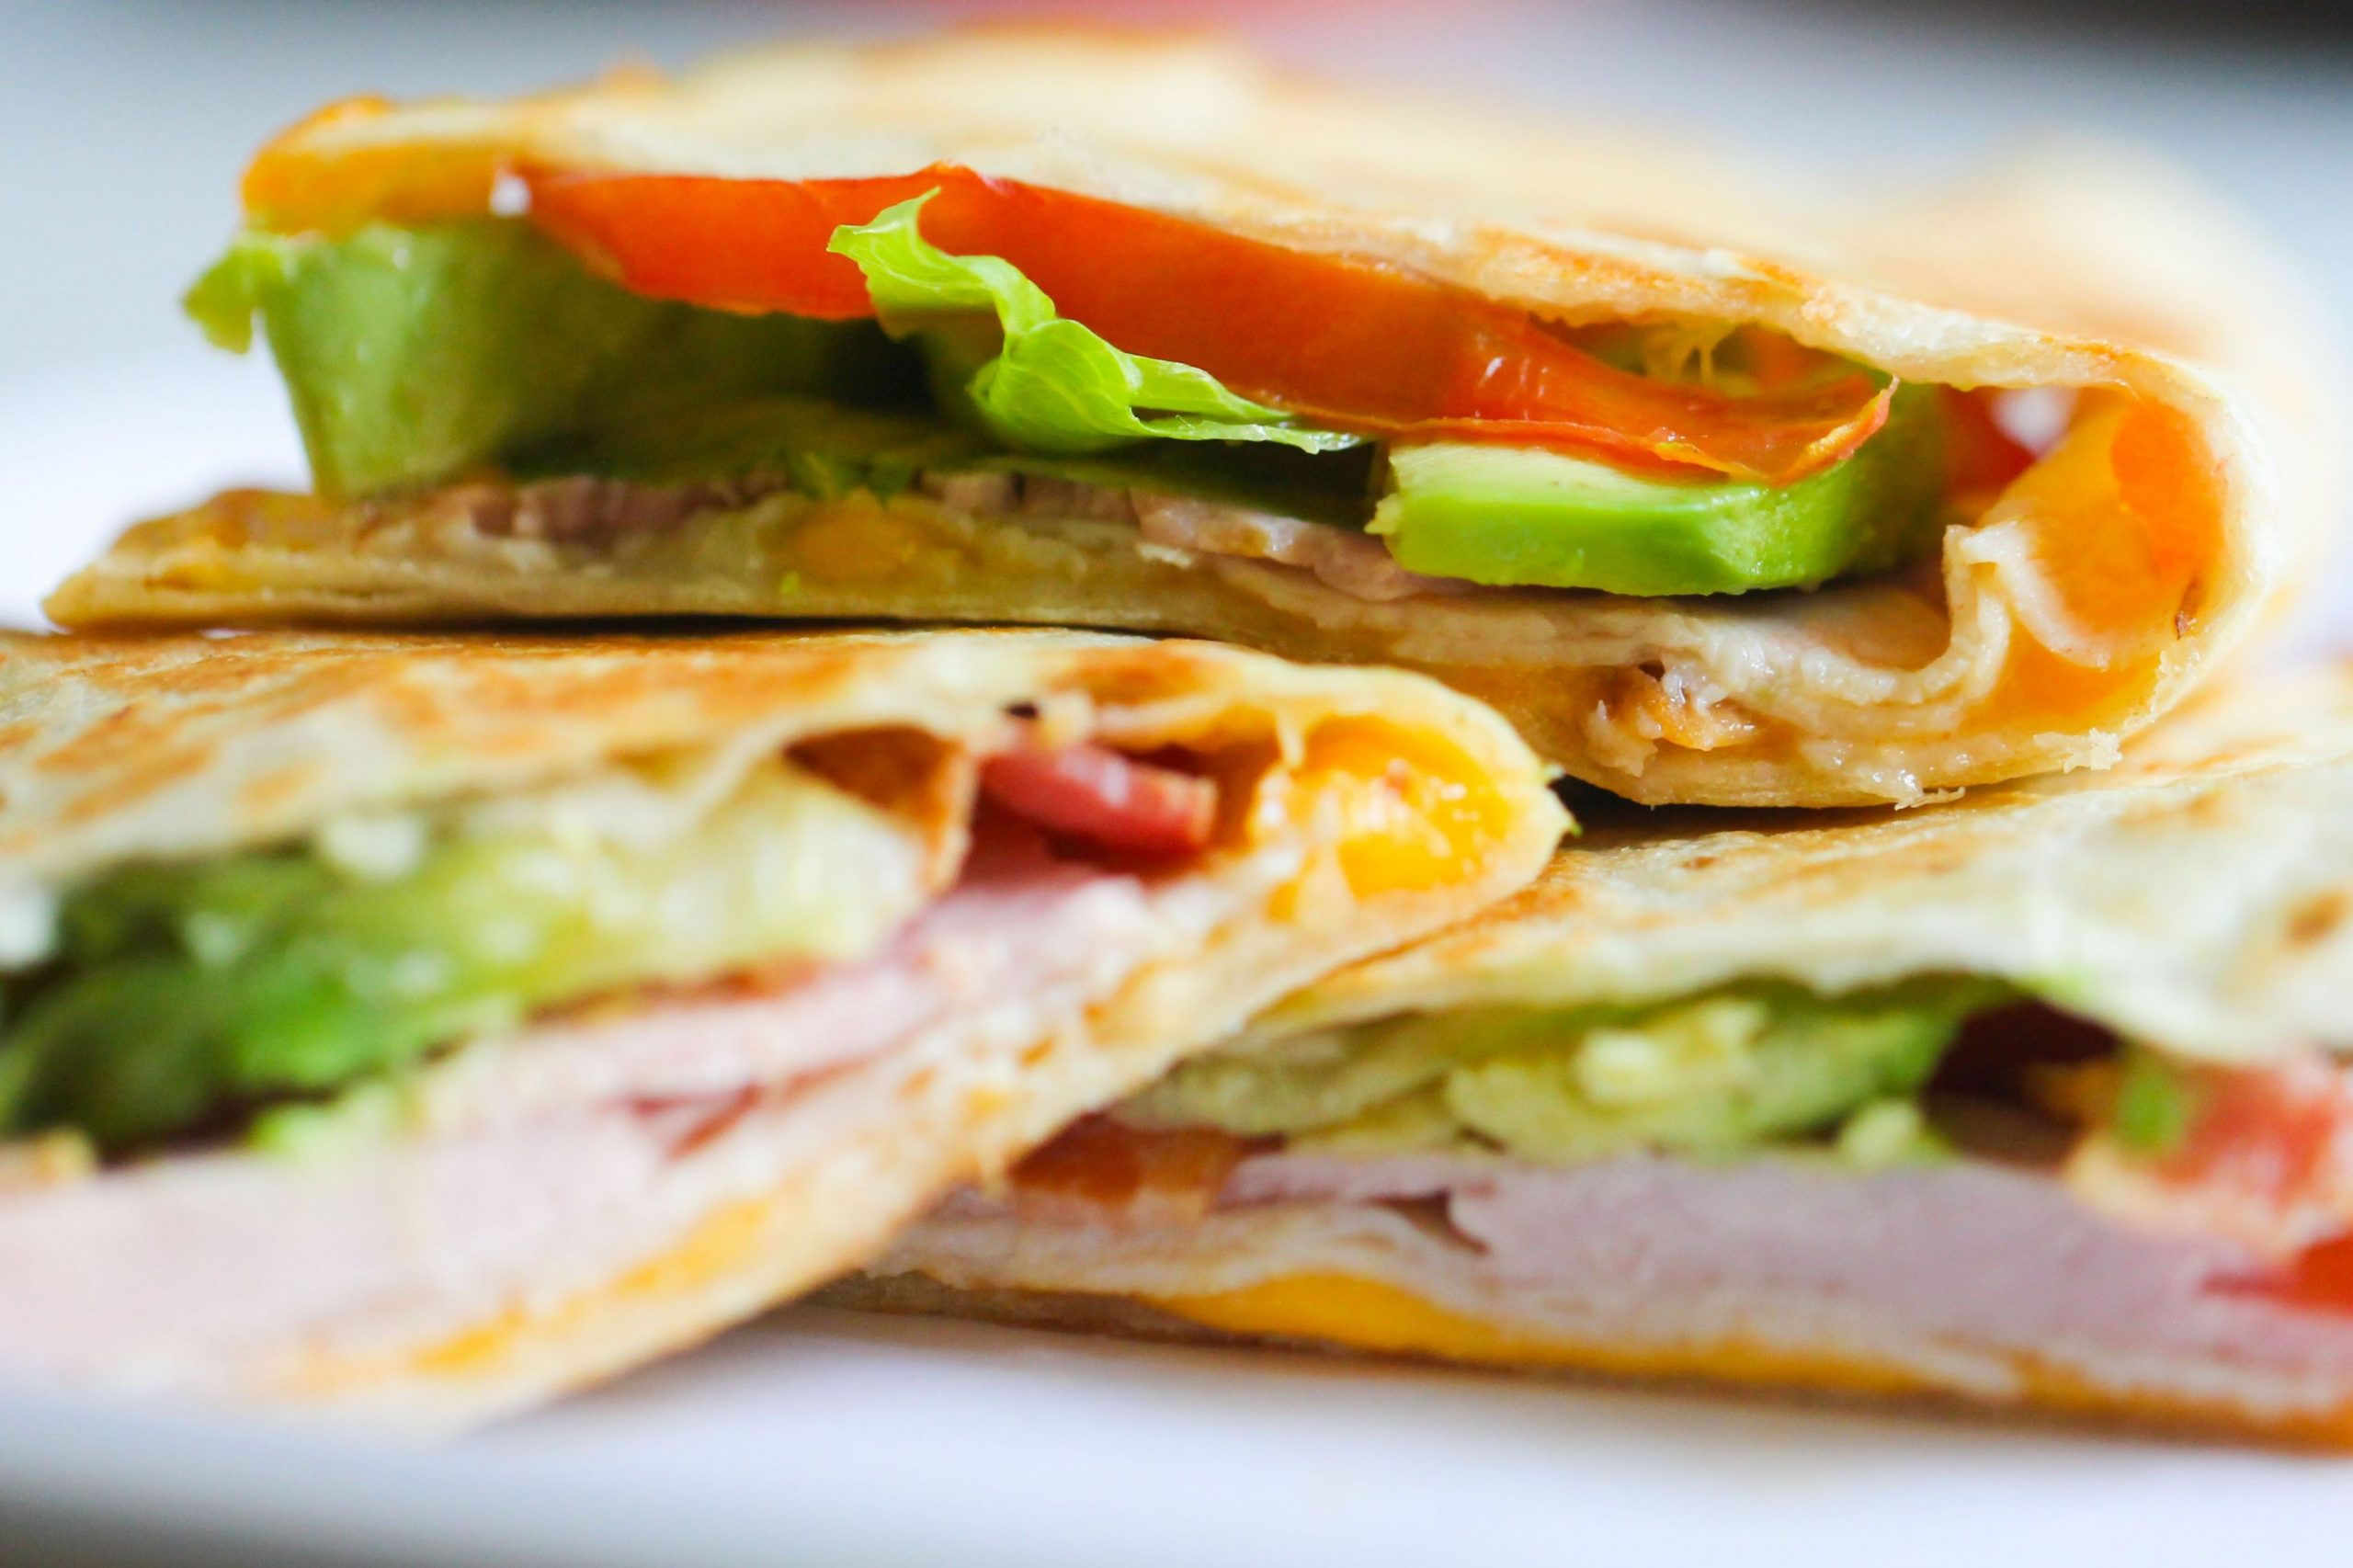 Chicken Club Quesadillas - Summer Quesadilla Recipes